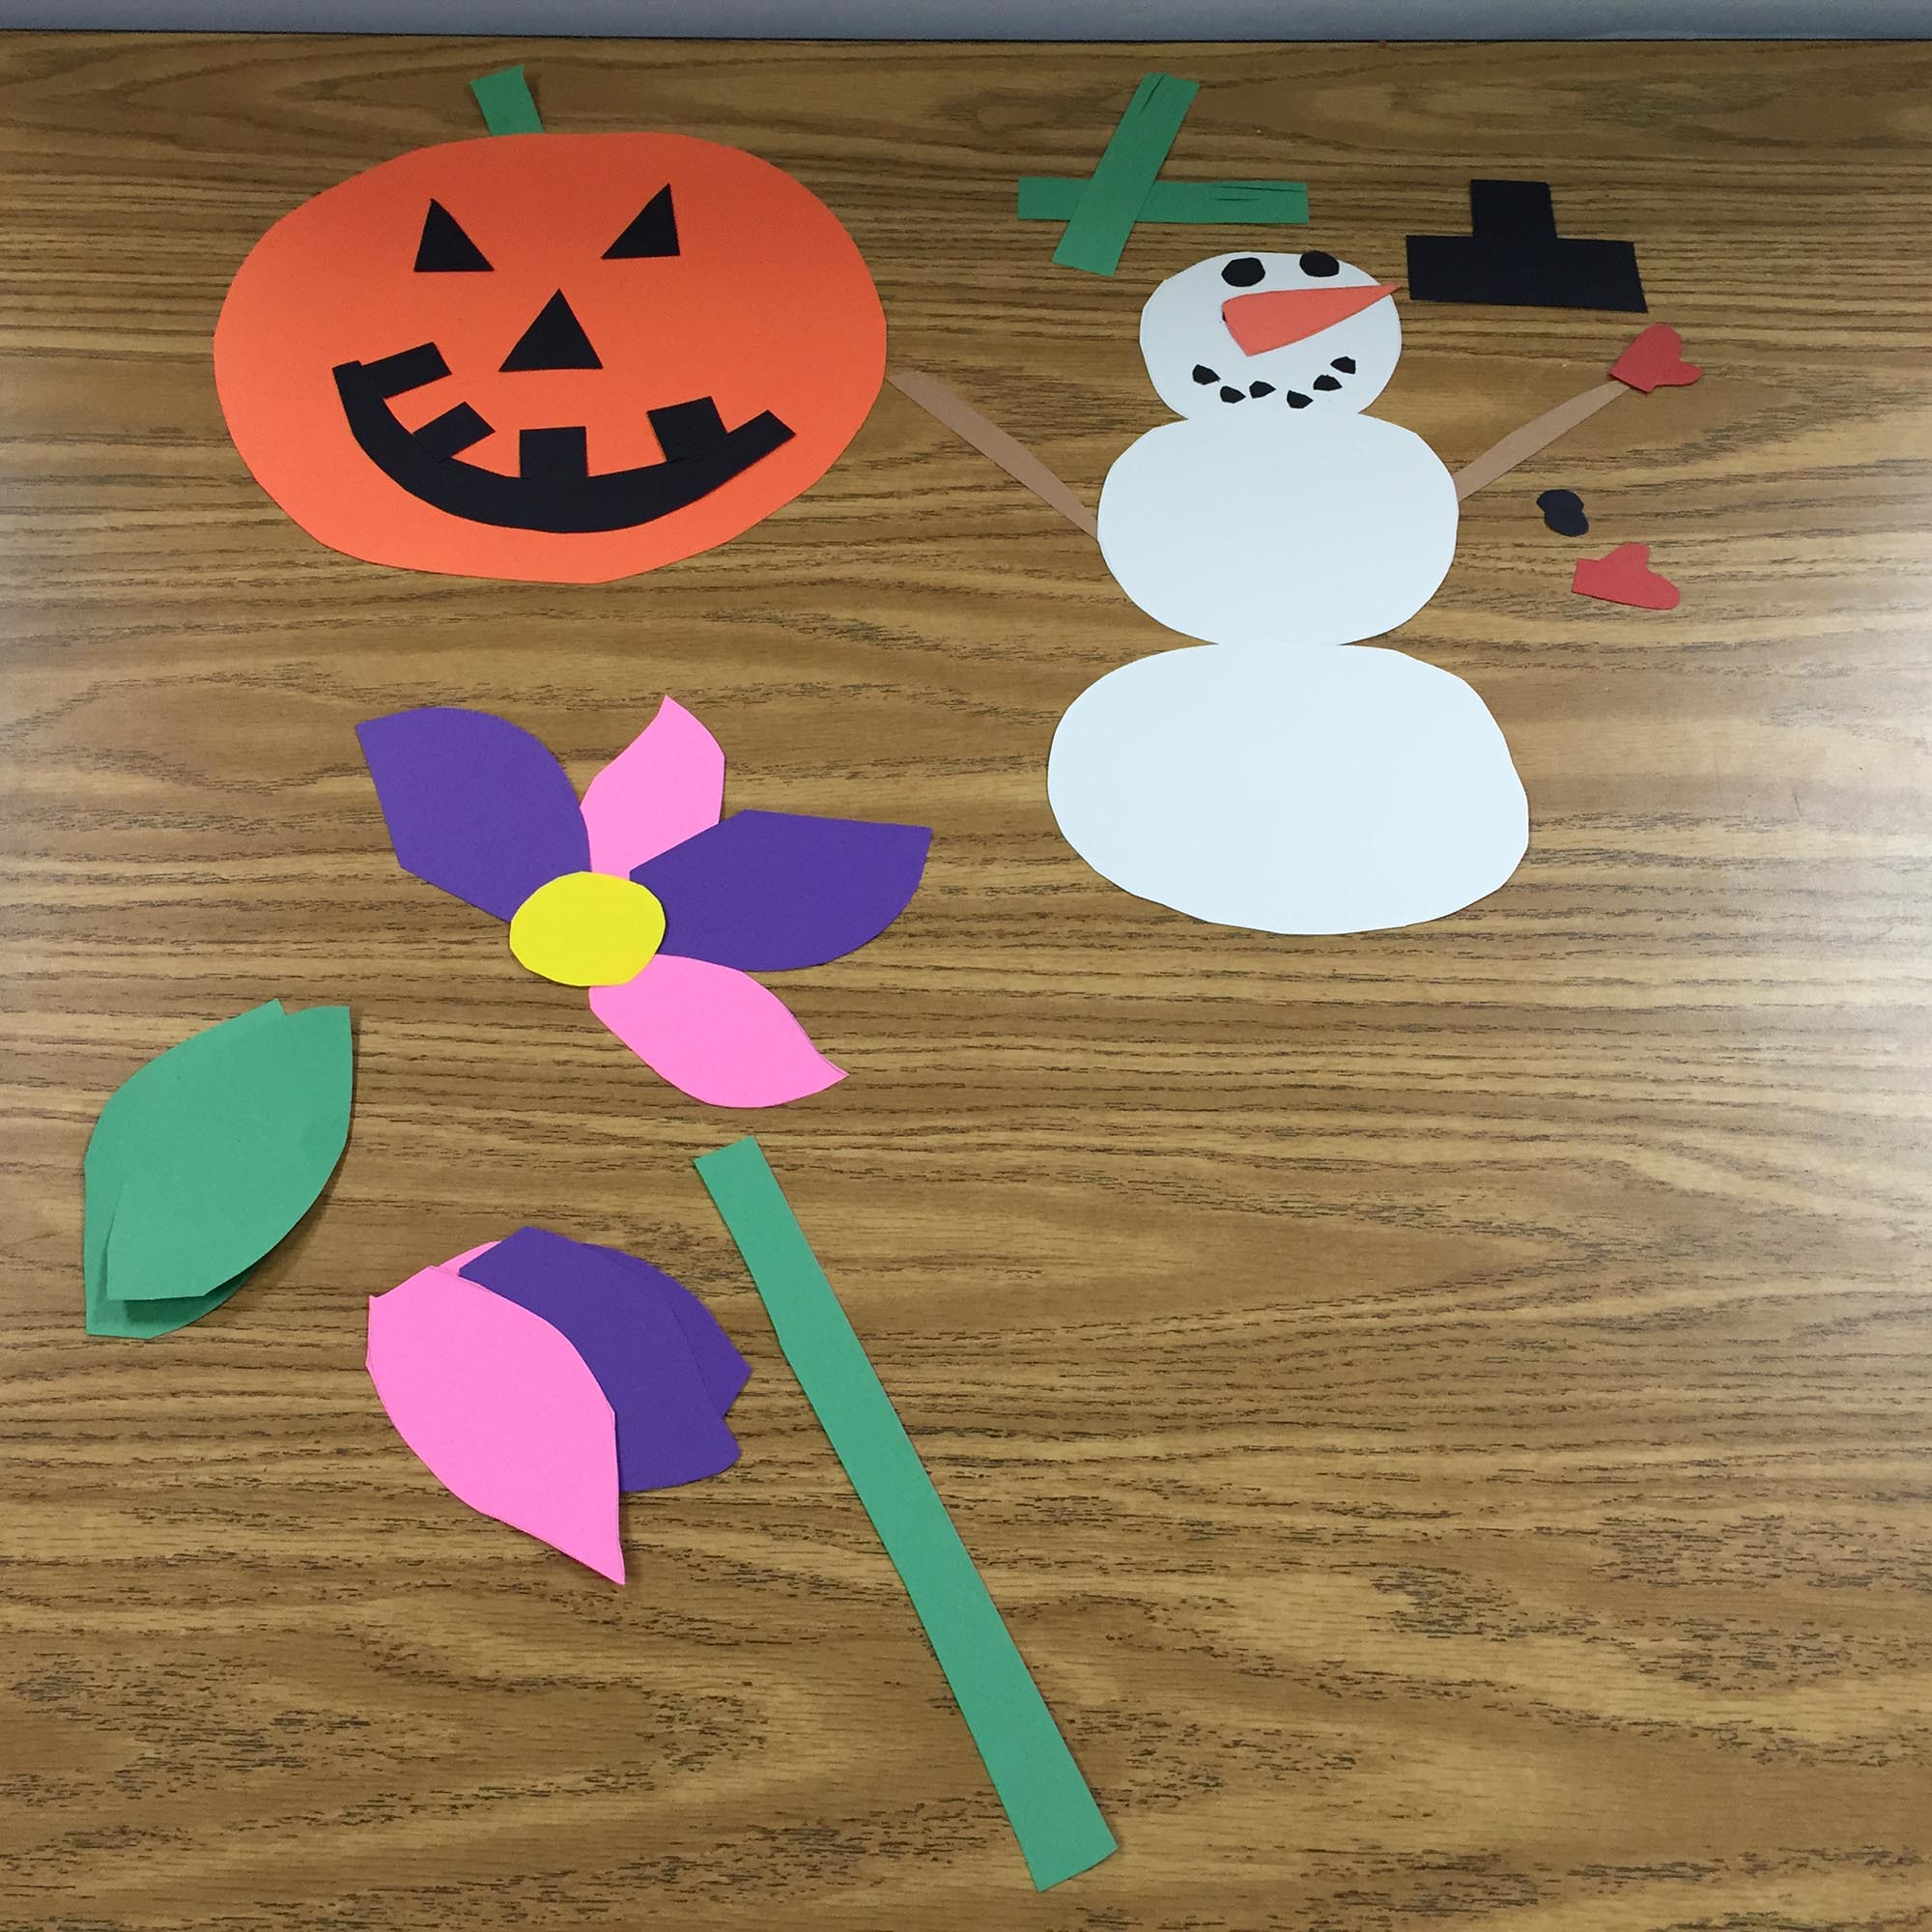 A jack-o-lantern, a snowman, and a flower with pieces